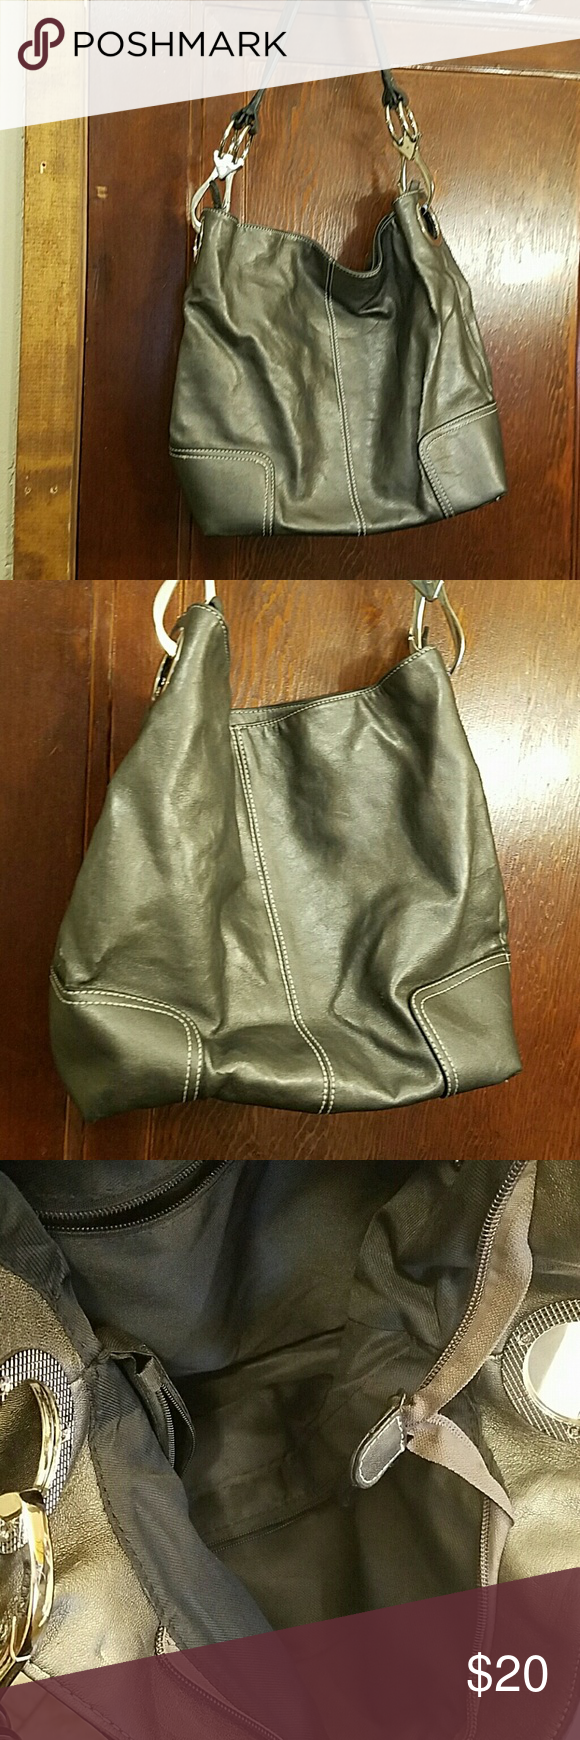 Cute Pewter Colored Hobo Handbag Euc Except For A Tears Notice In Picture Bags Hobos